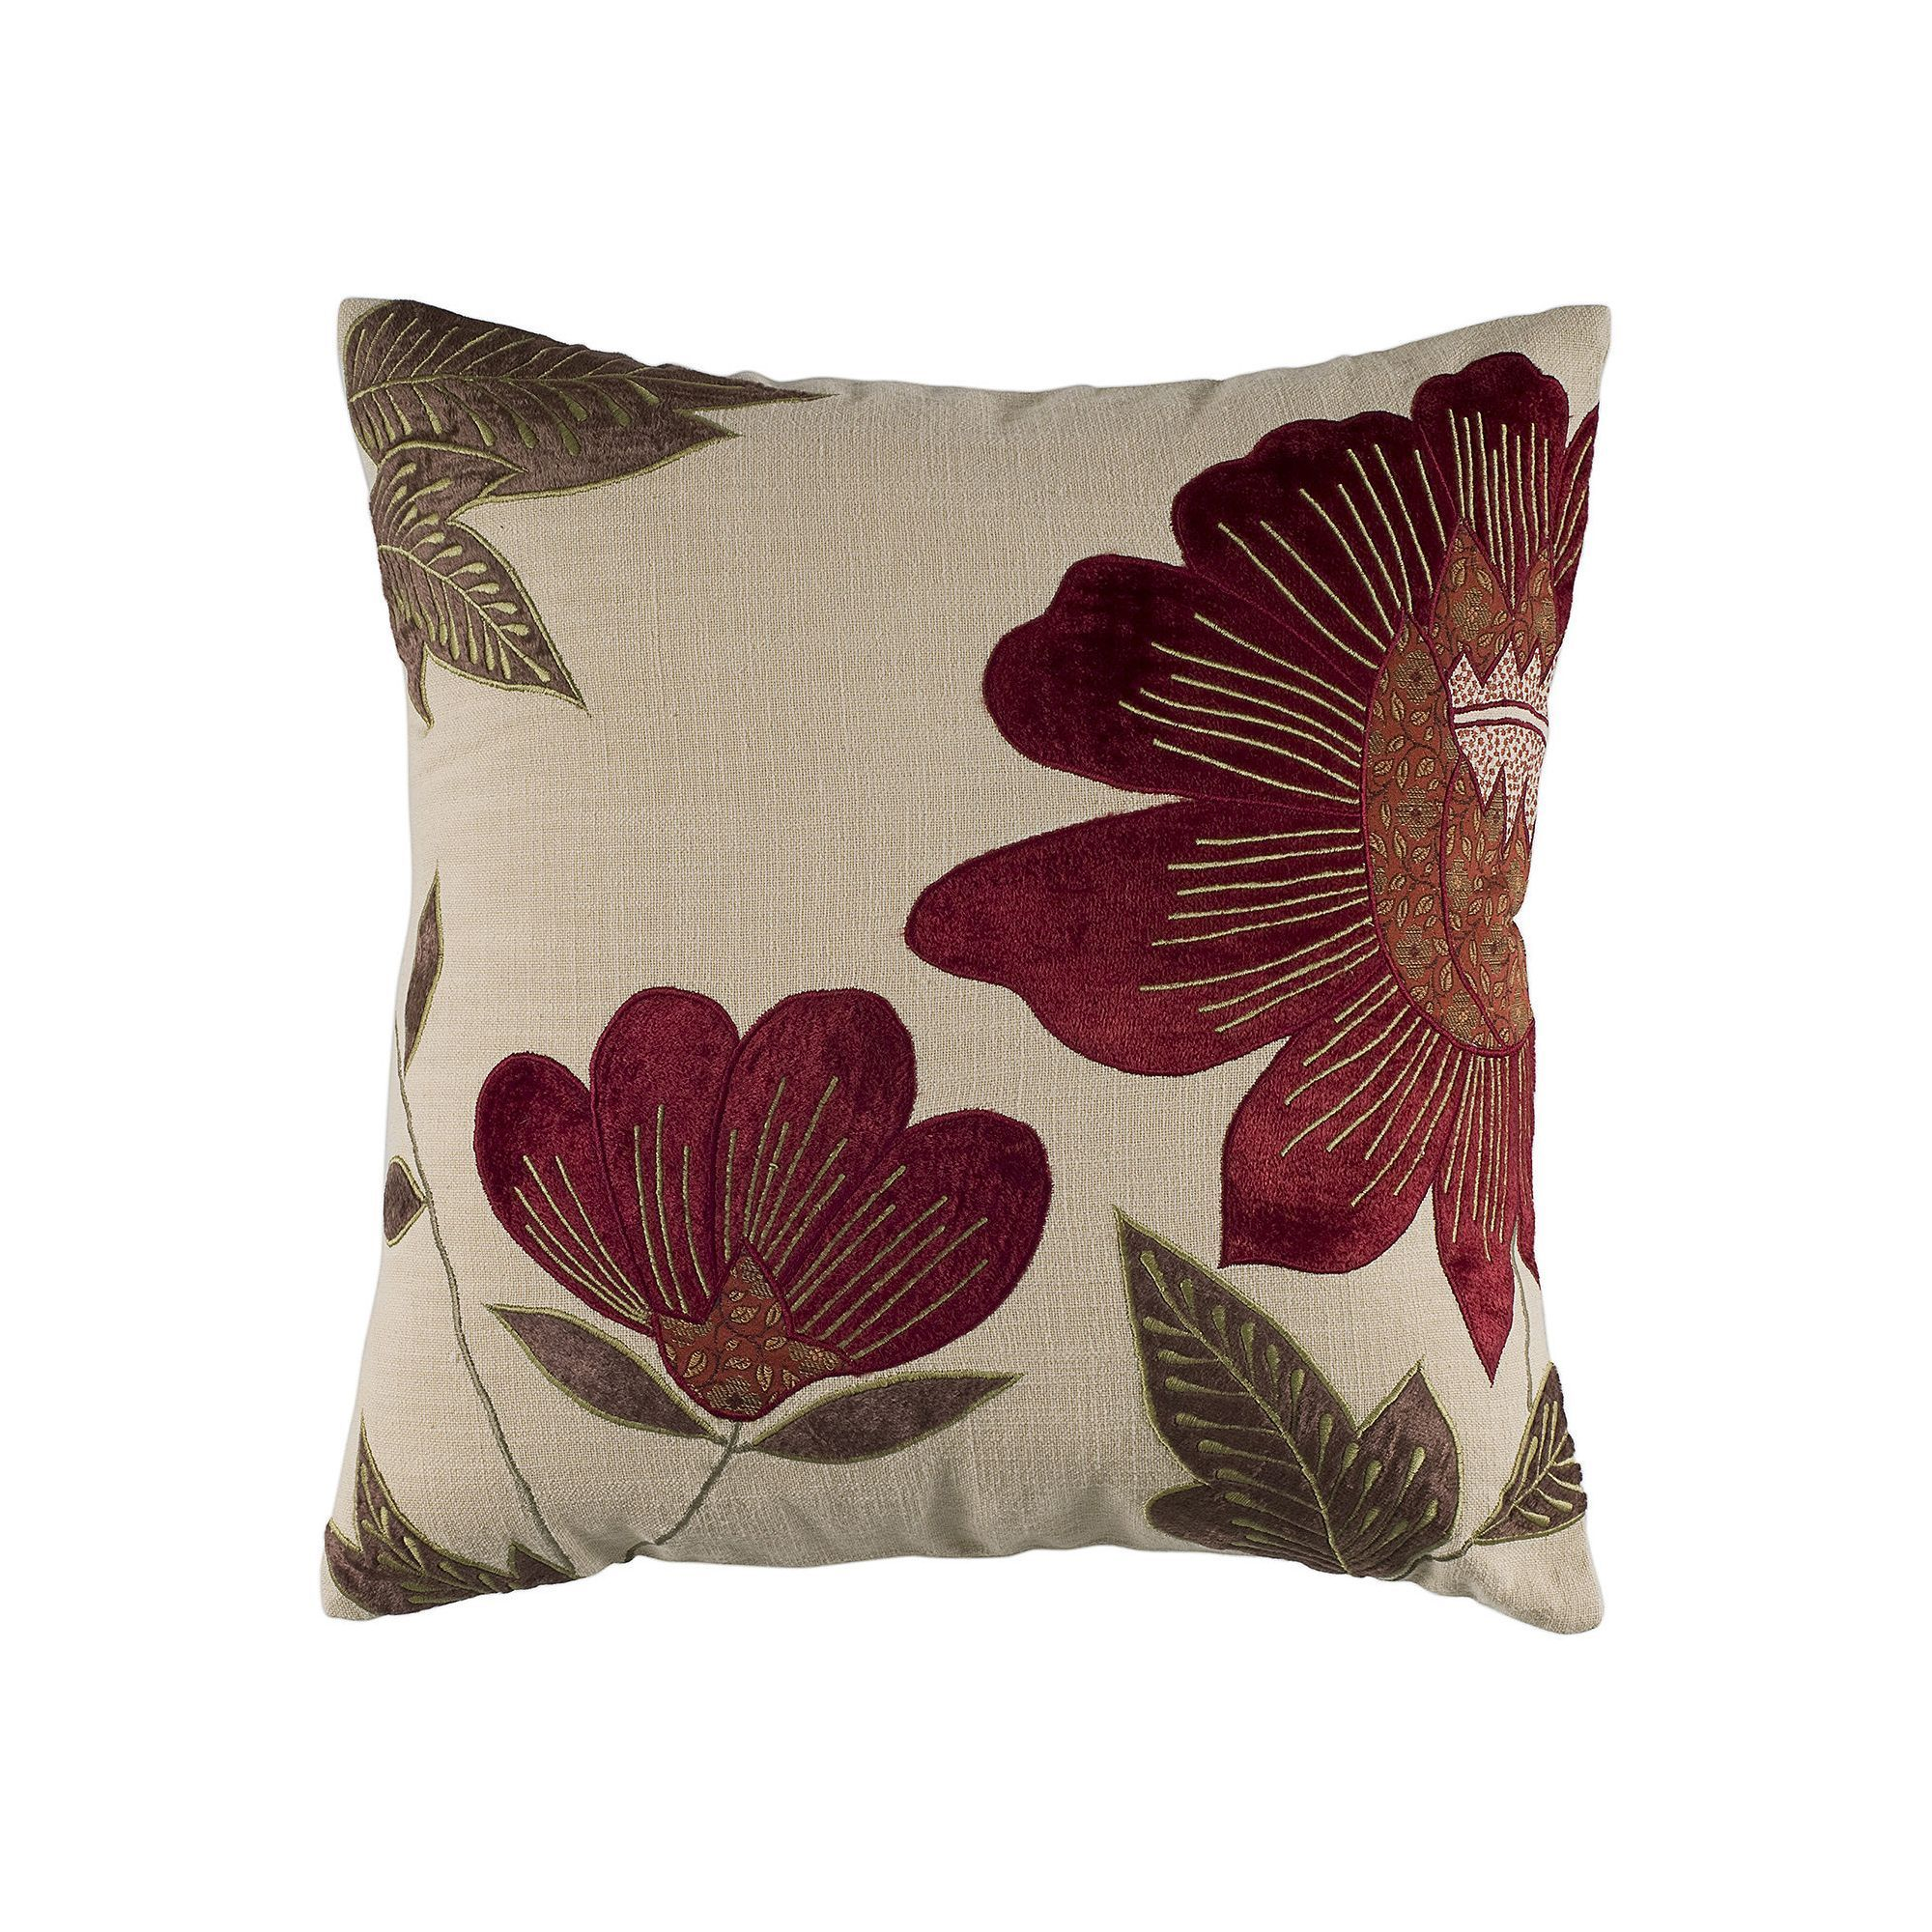 pattern home pillows colorful p majestic msrp pillow throw bolster htm red round